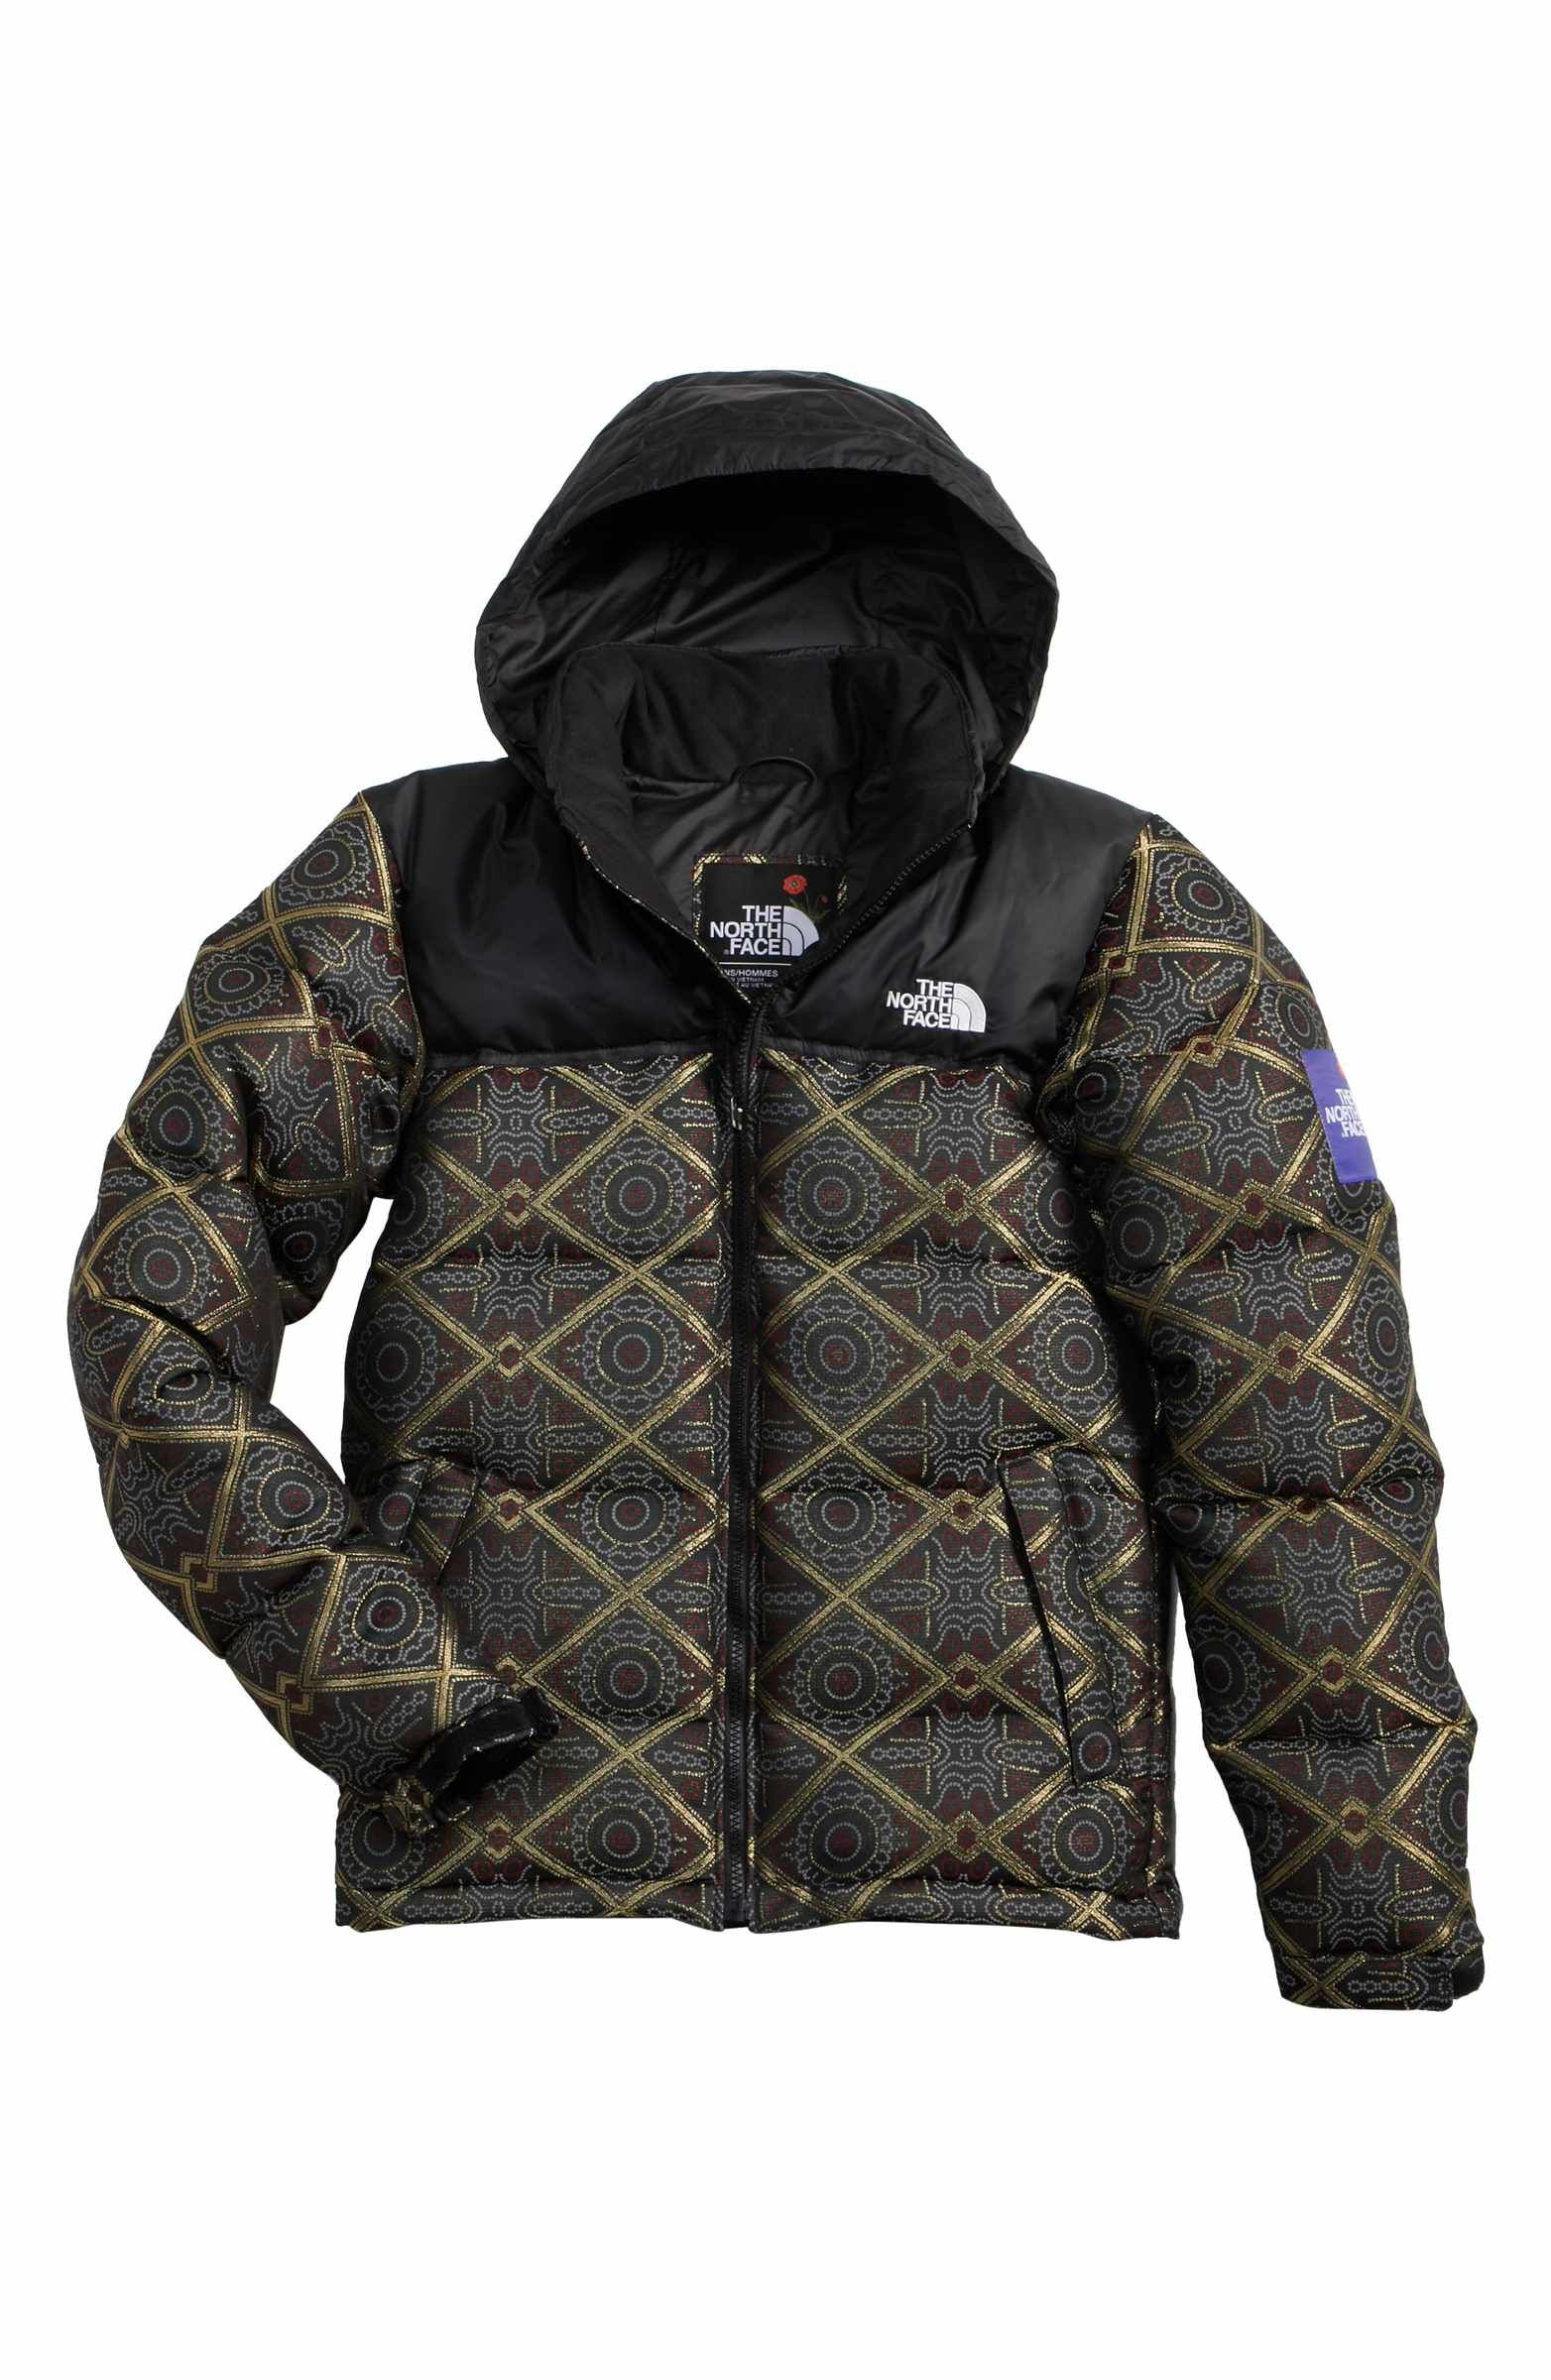 The North Face Nuptse 700 Fill Power Down Puffer Jacket Nordstrom Puffer Jackets Jackets North Face Nuptse [ 2400 x 1564 Pixel ]